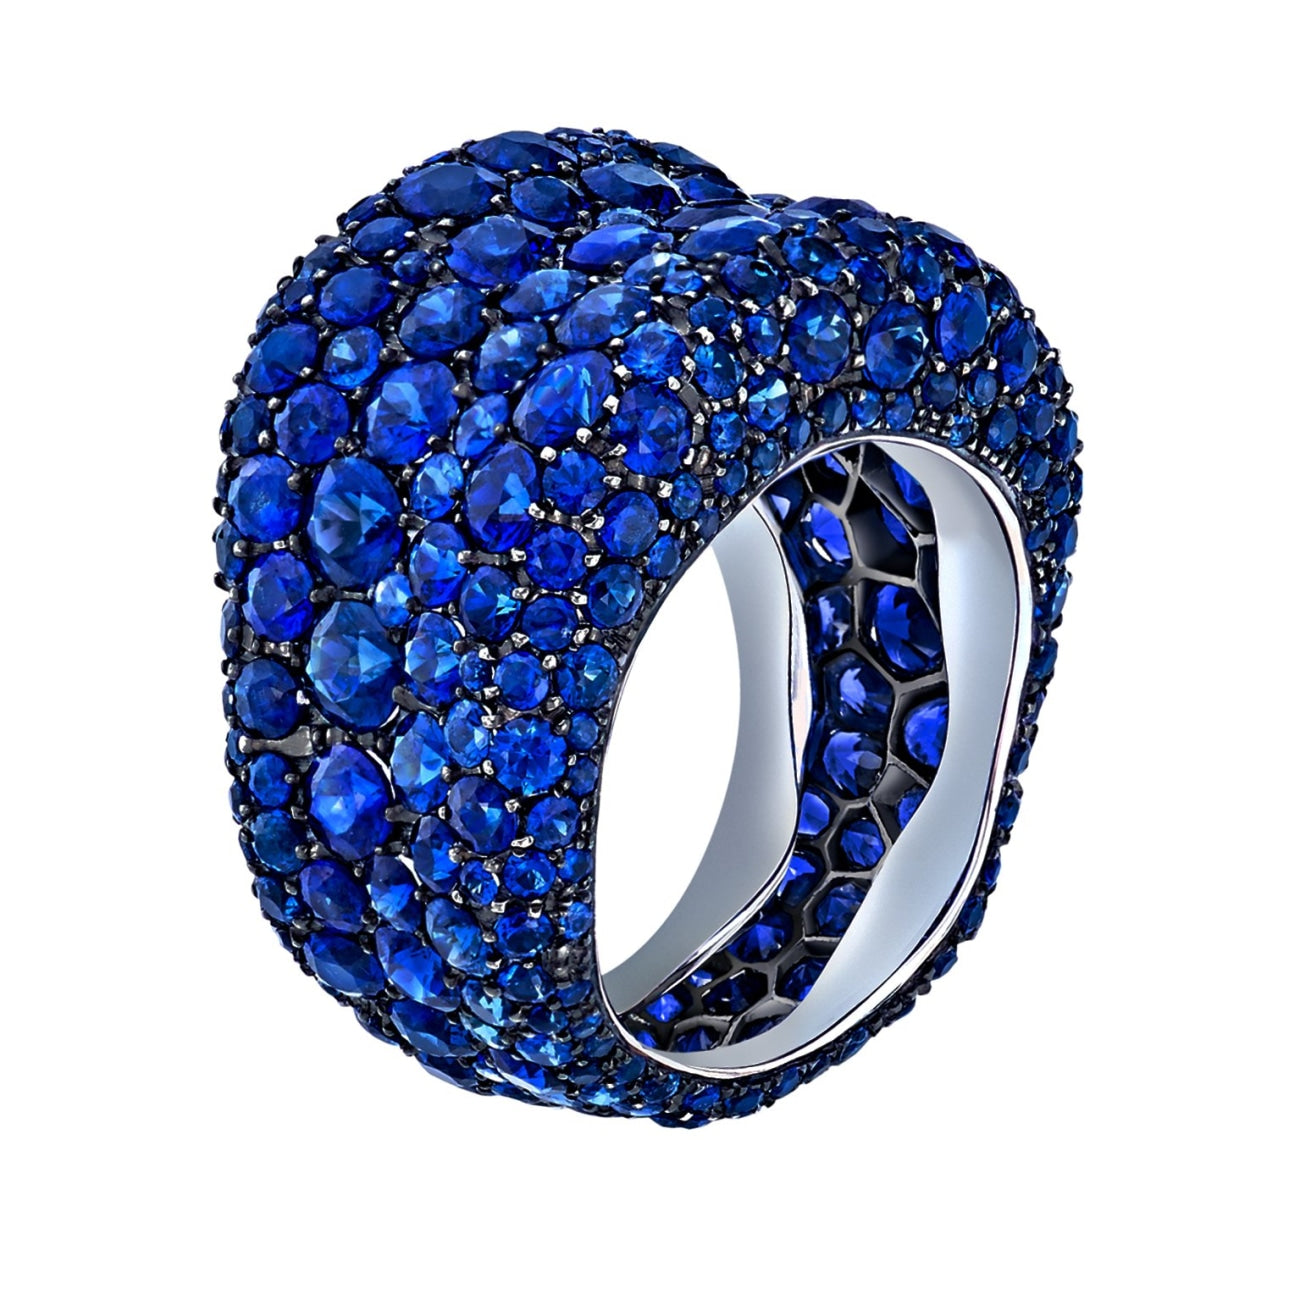 Fabergé Jewelry - Emotion Sapphire Ring | Manfredi Jewels